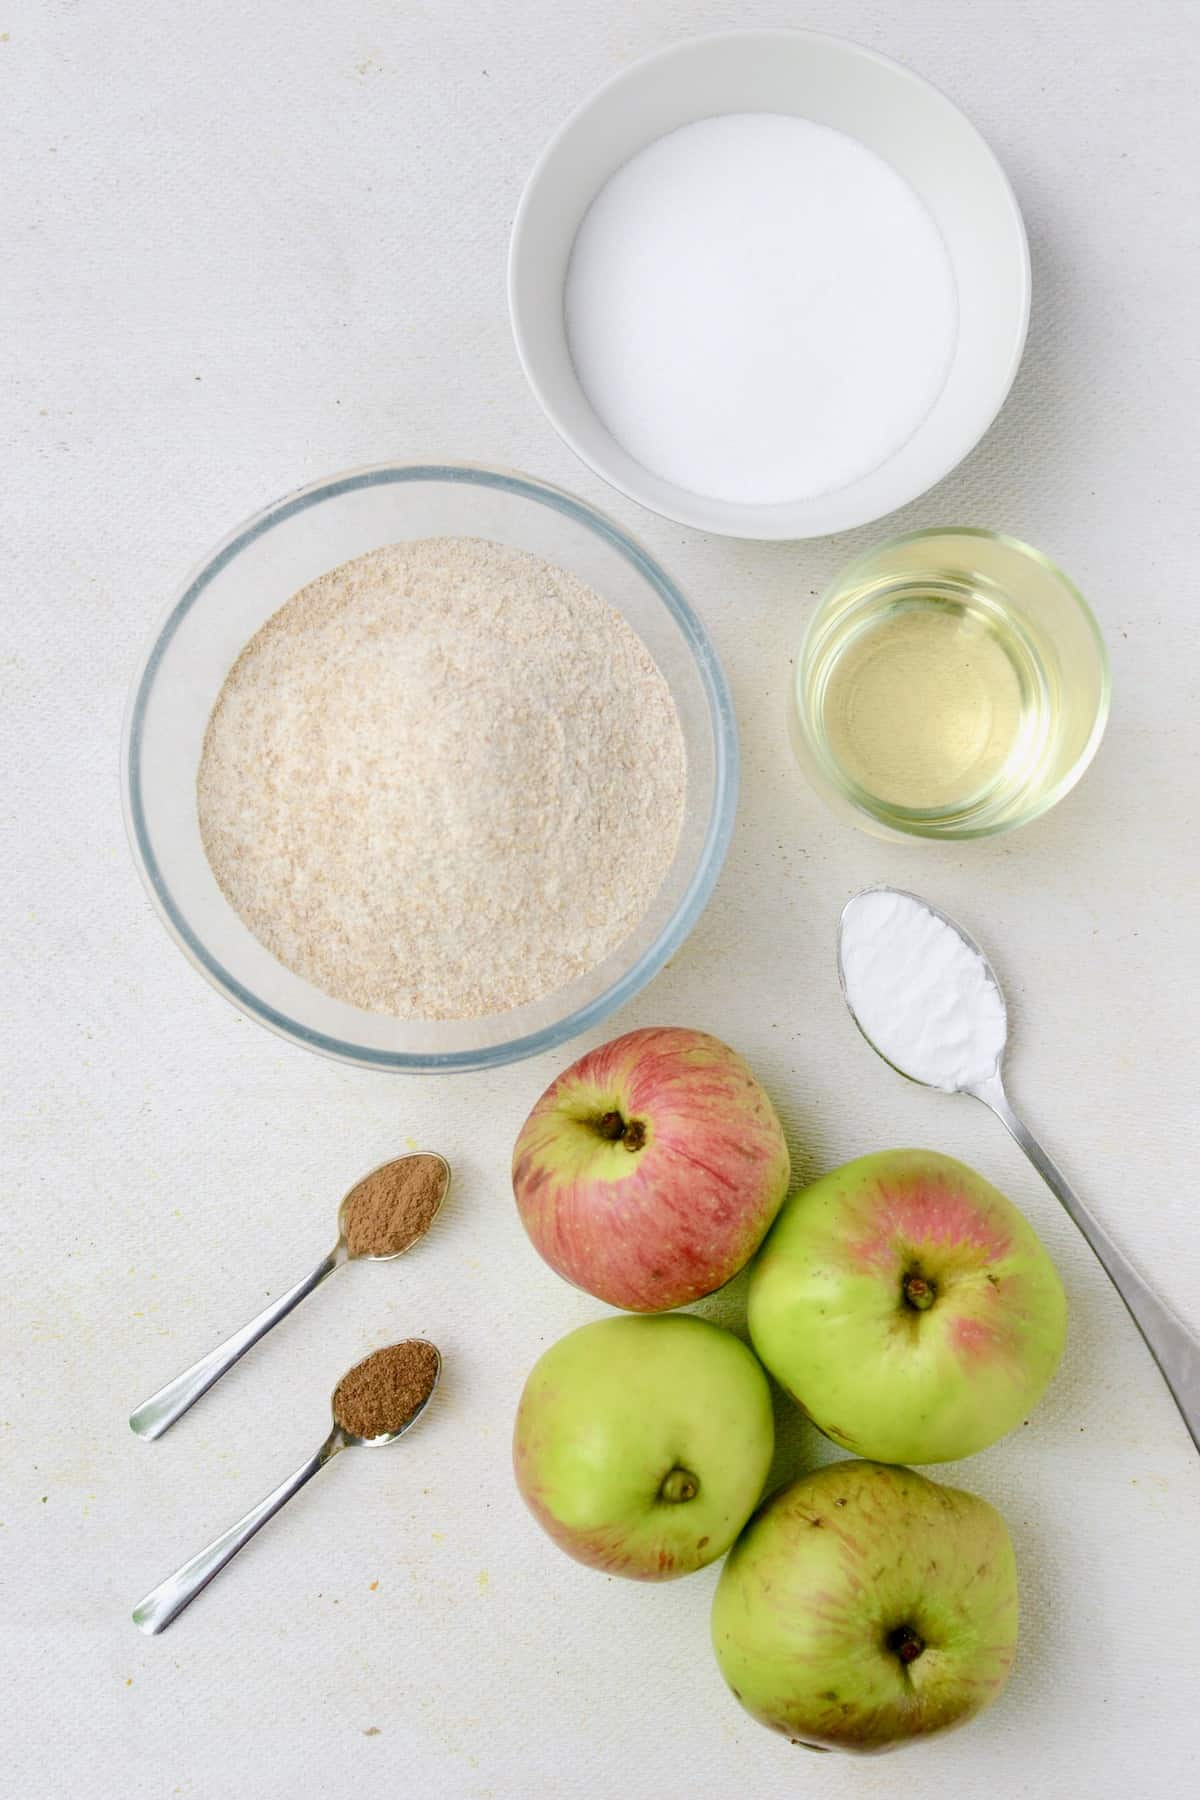 Ingredients for the vegan apple cake: Four apples, a bowl of flour, a bowl of sugar, oil, and spoonfuls of spices and baking soda on a white board.